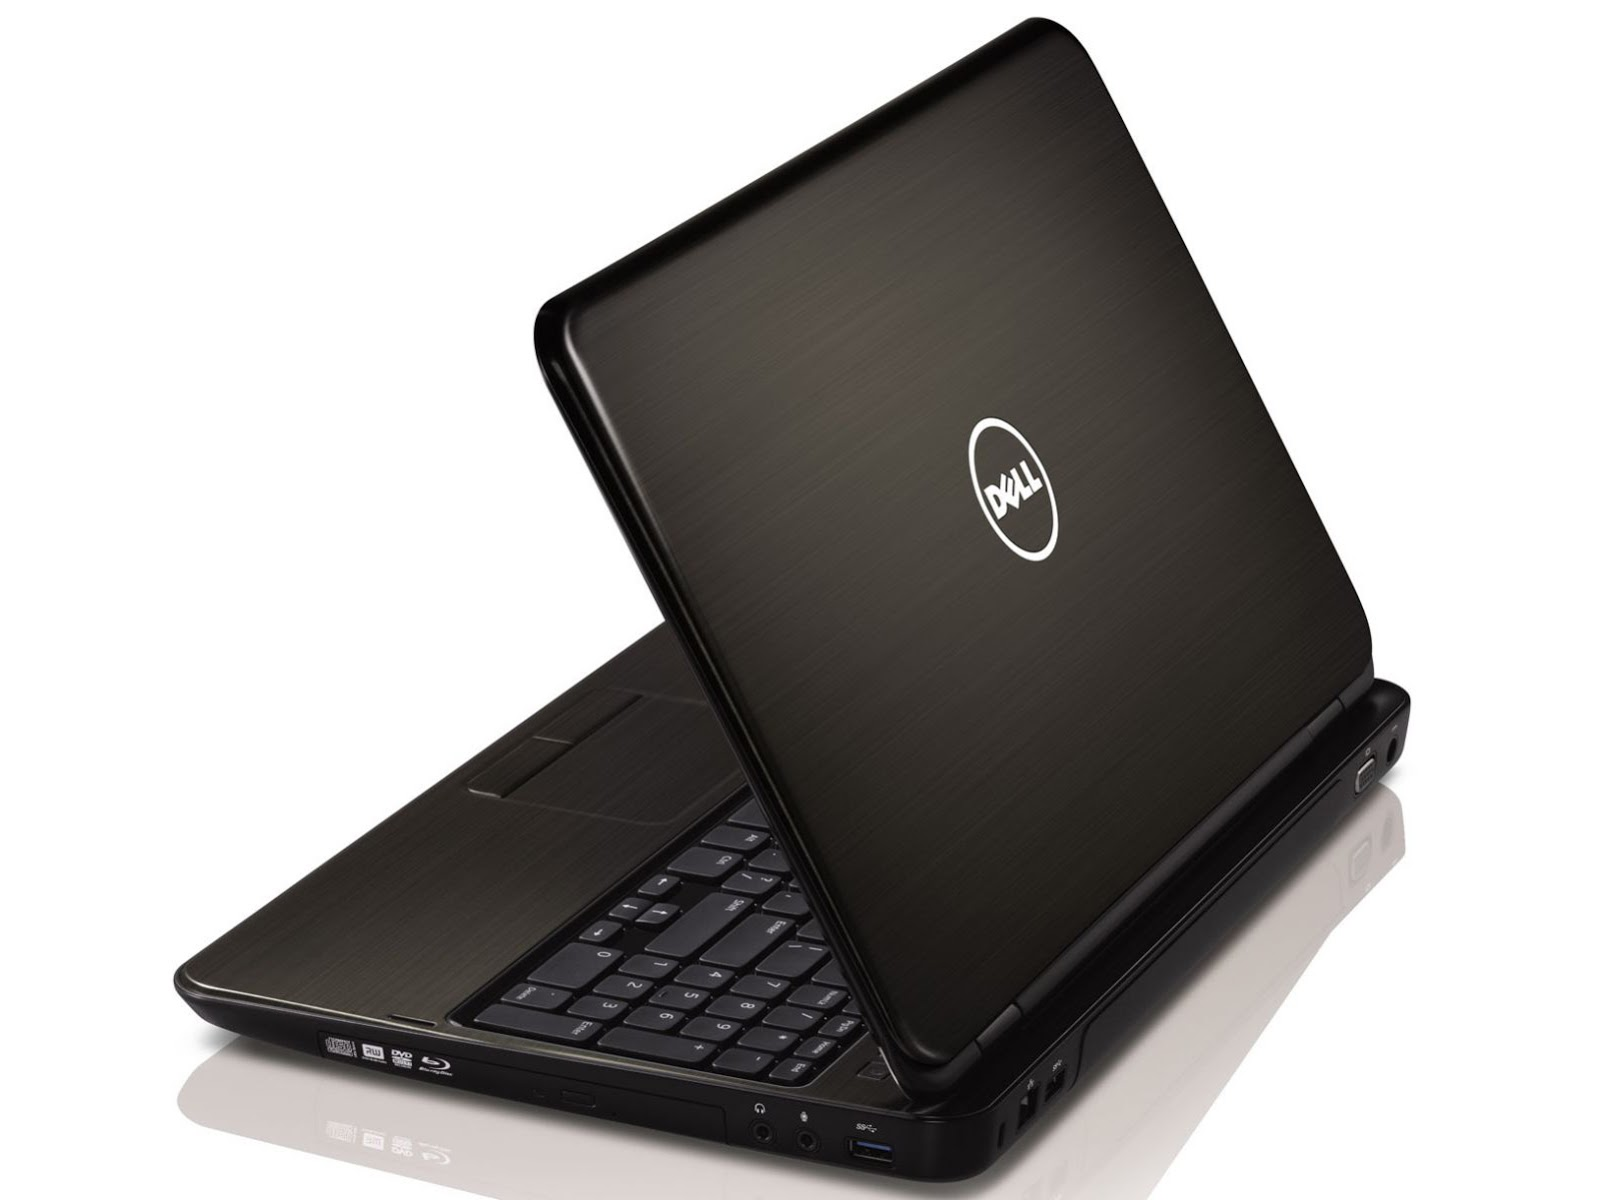 Download driver dell inspiron n7570 win 10 64bit download driver.